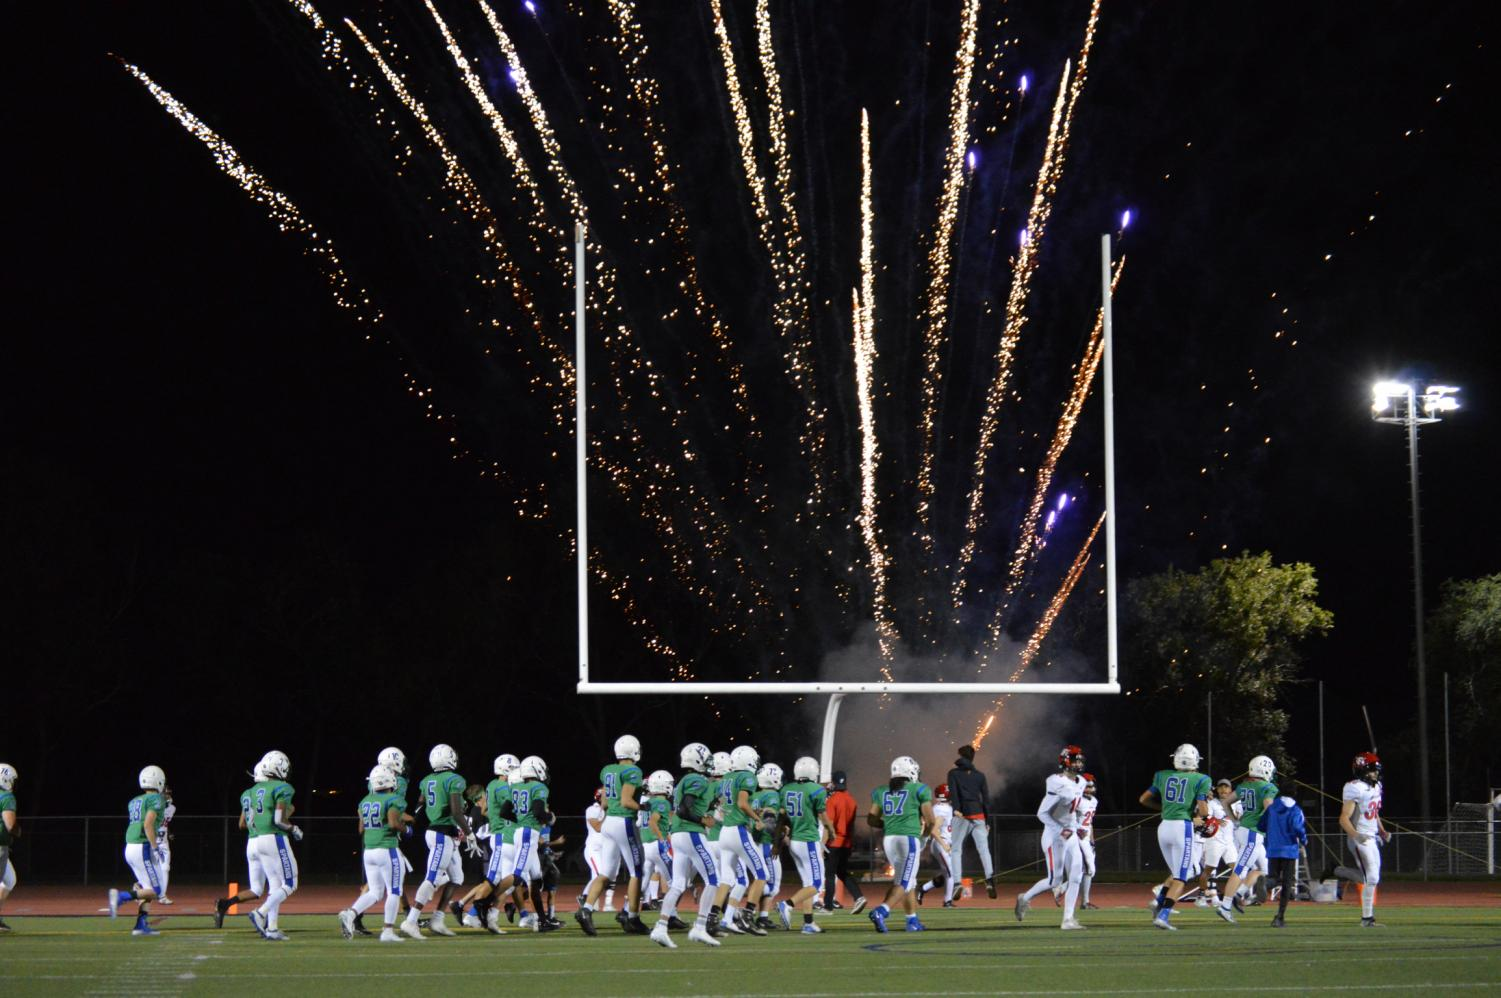 Fireworks pumped up the crowd at the September 20th football game against Fairview.